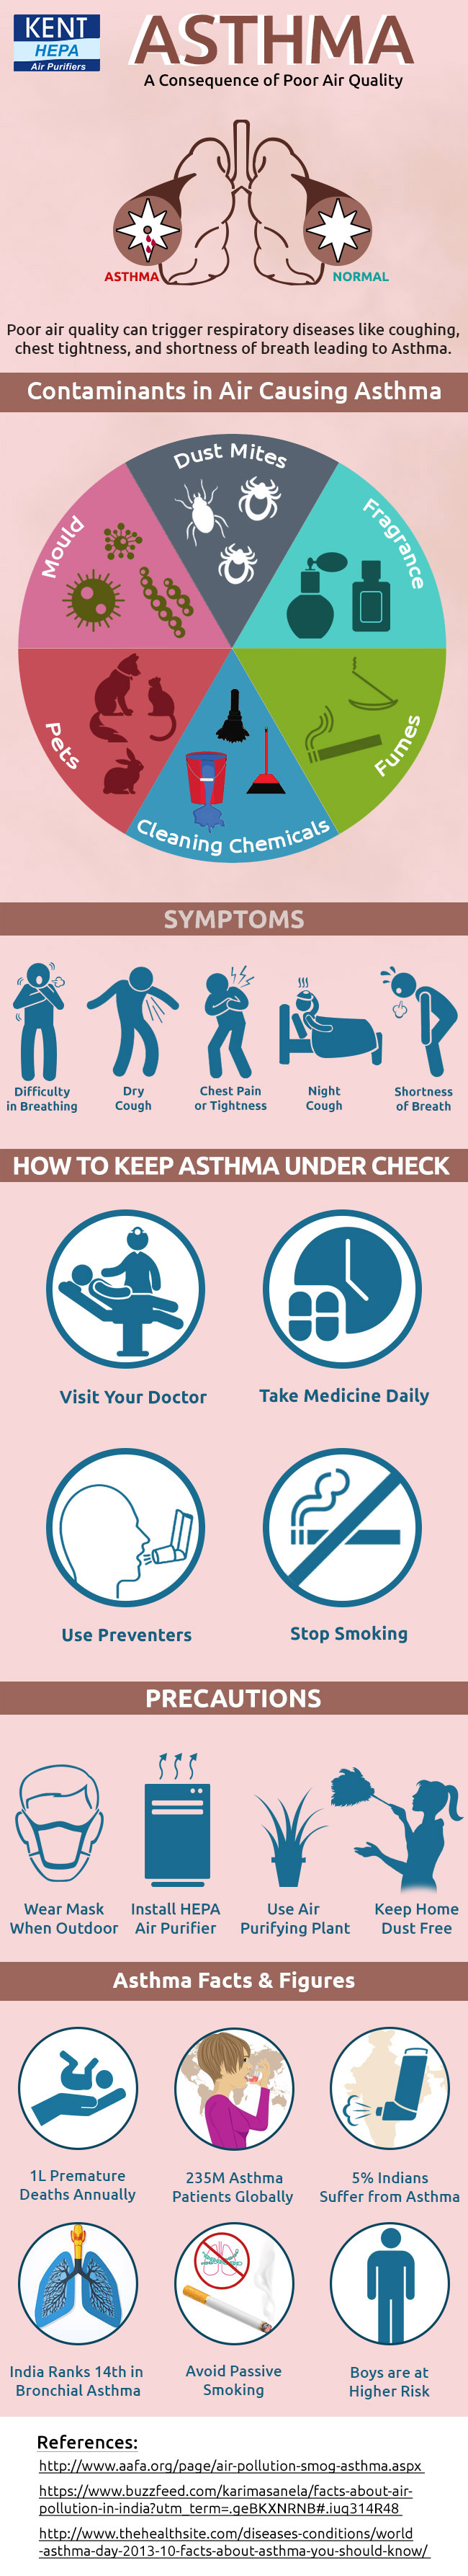 AsthmaAsthma-The Consequence of Poor Air Quality | Infographic-The-Consequence-of-Poor-Air-Quality